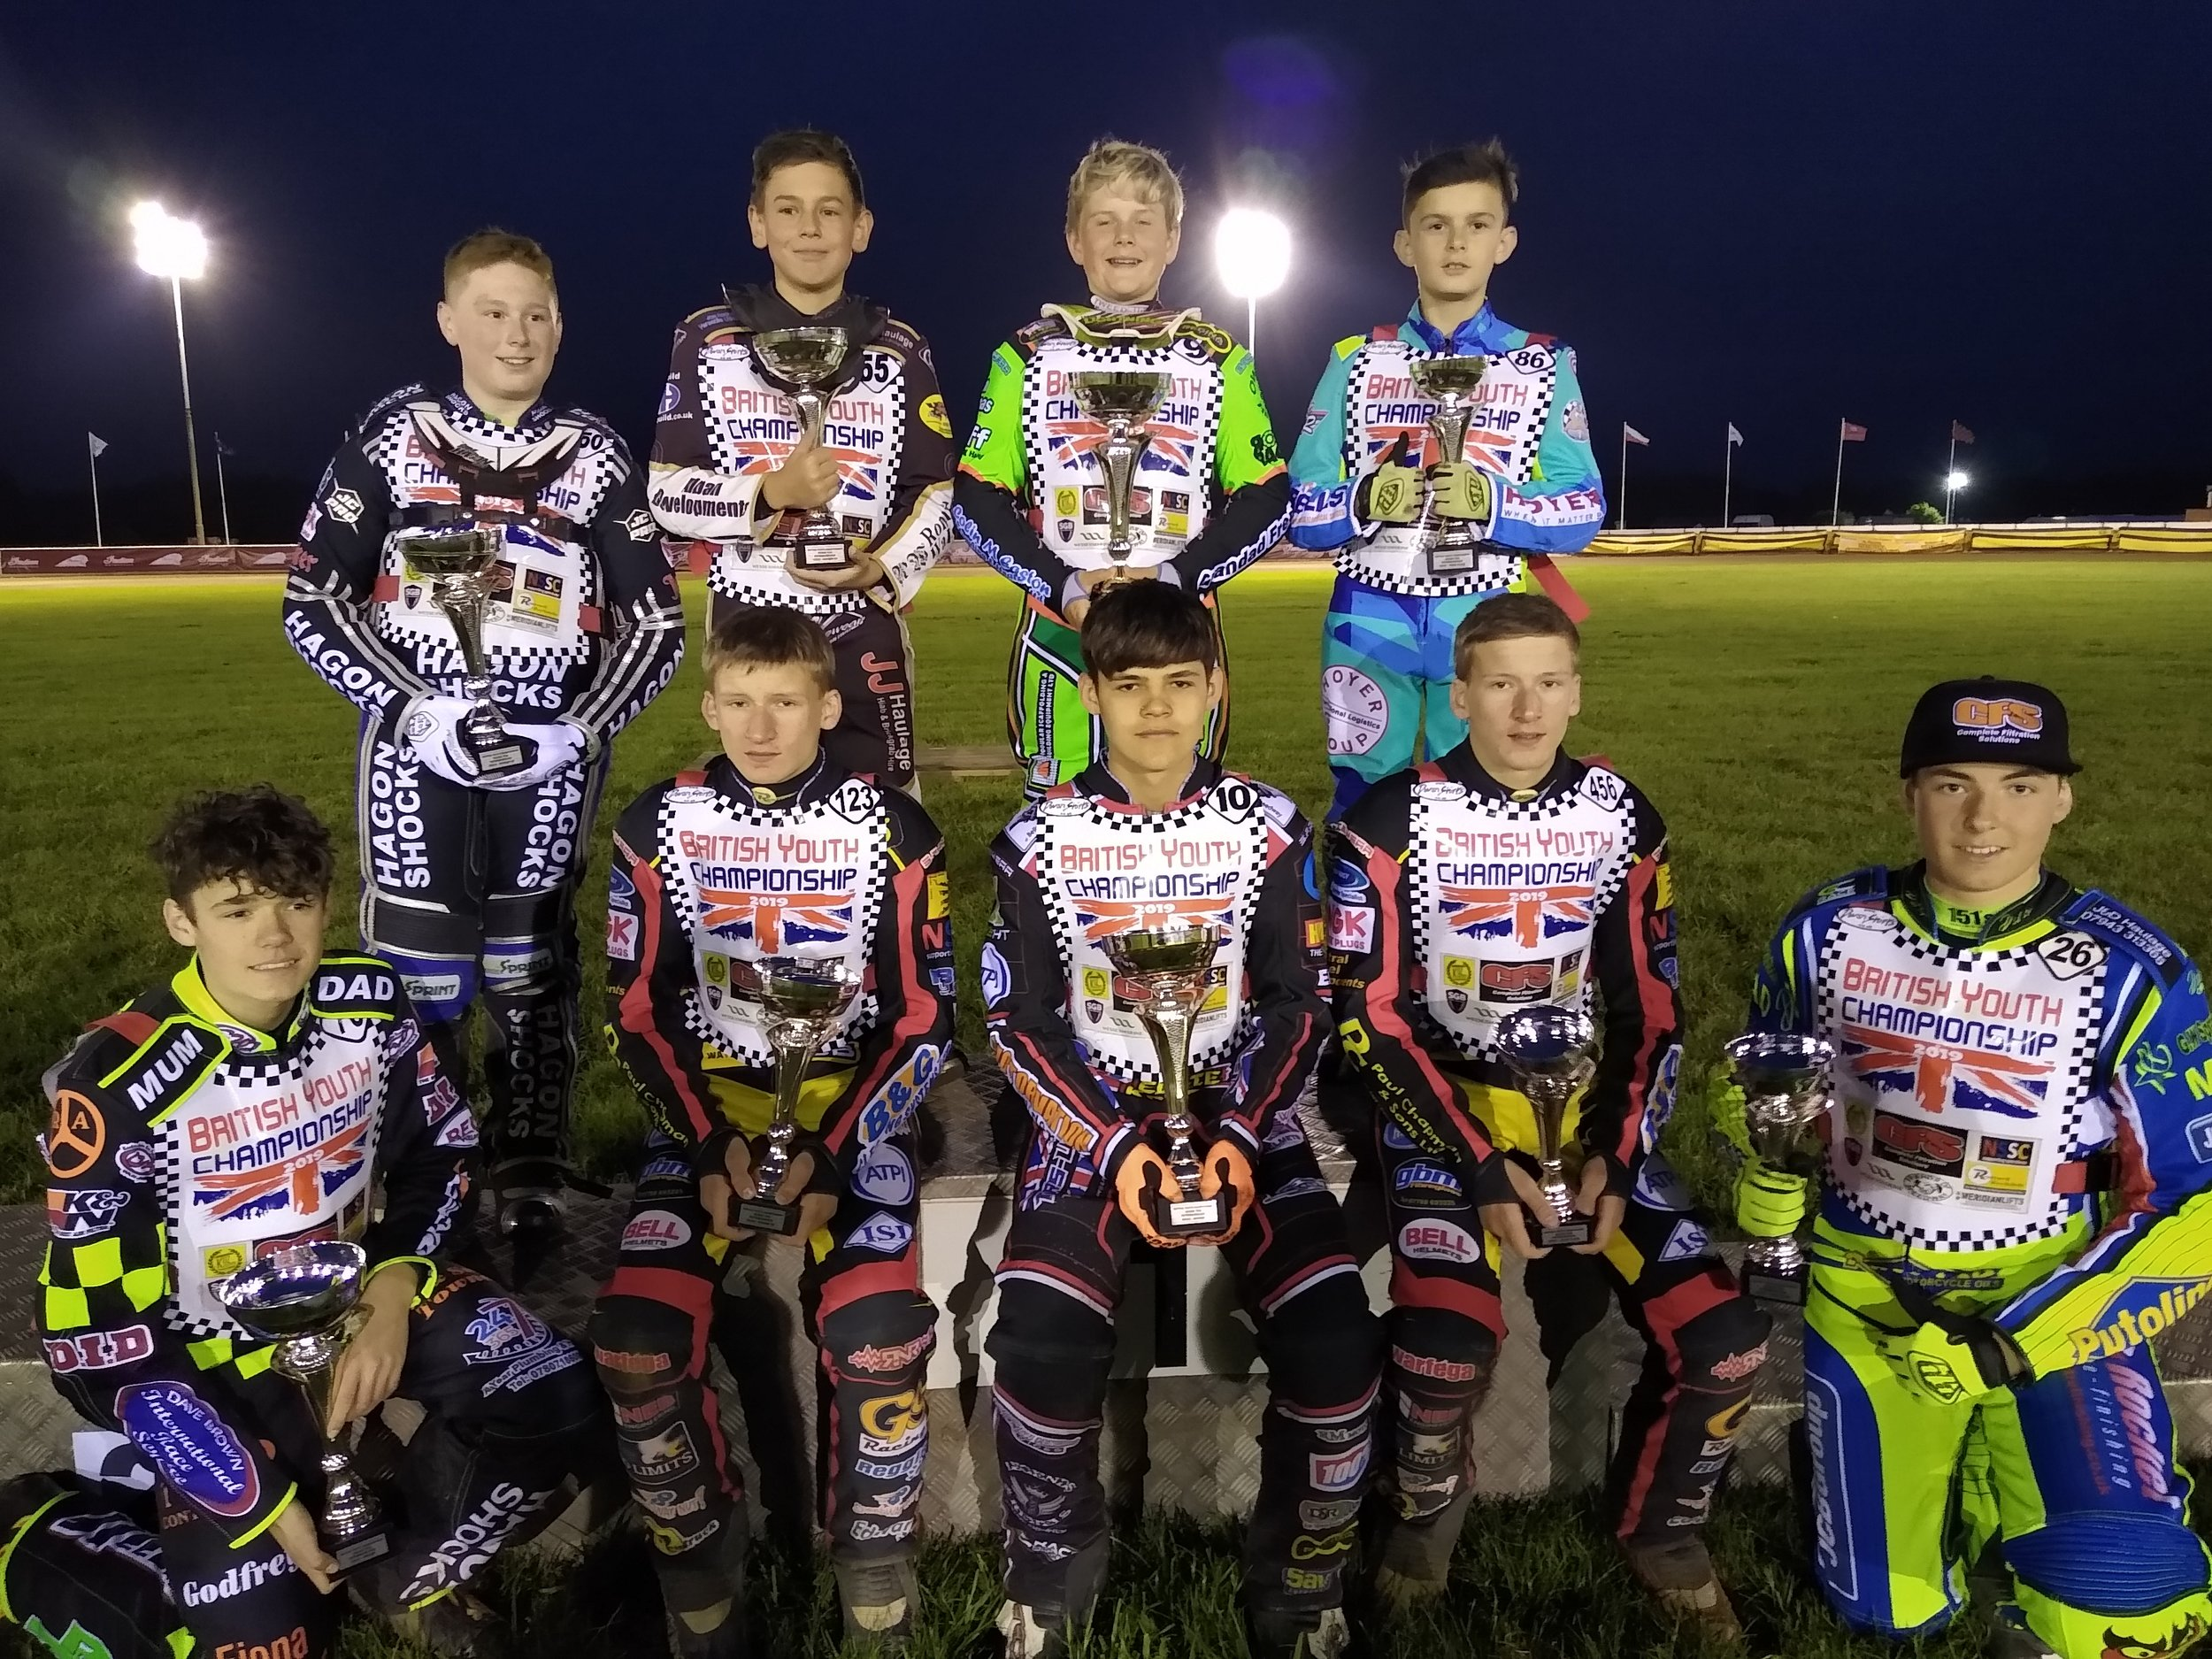 Round 4 of the British Youth Championships comes to Belle Vue on June 22